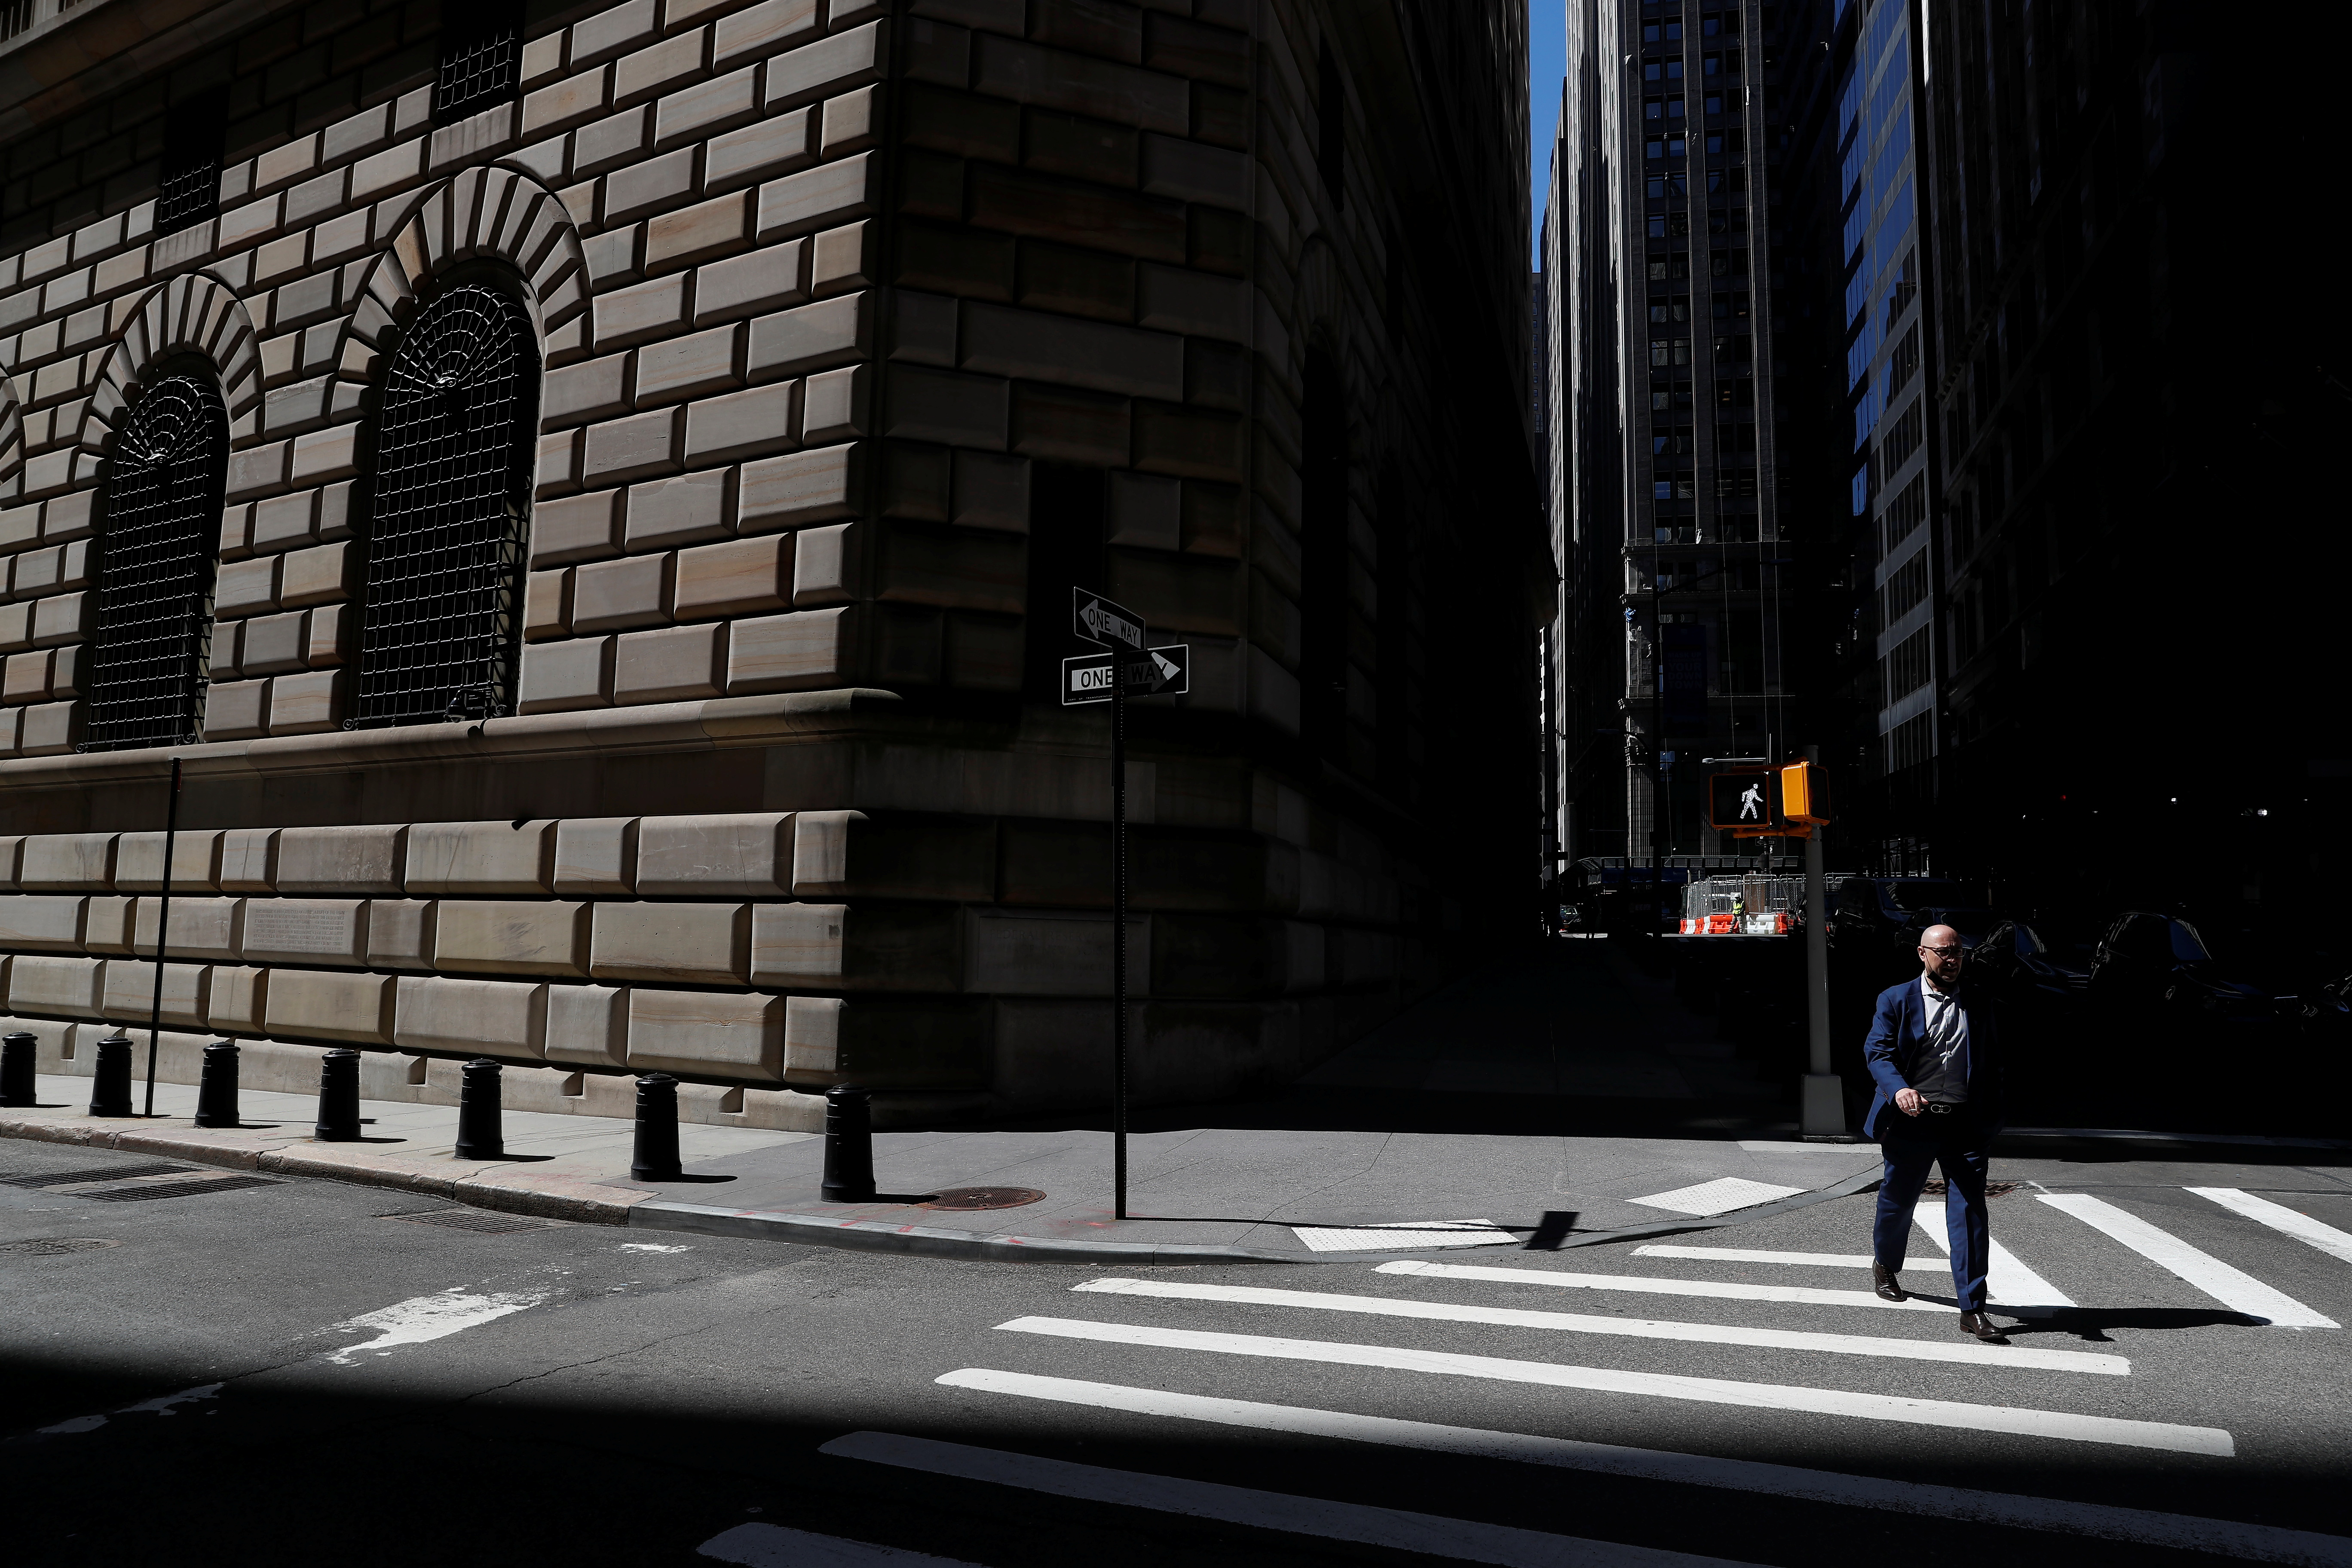 A man walks by the Federal Reserve Bank of New York Building in New York City, U.S., April 26, 2021. REUTERS/Shannon Stapleton